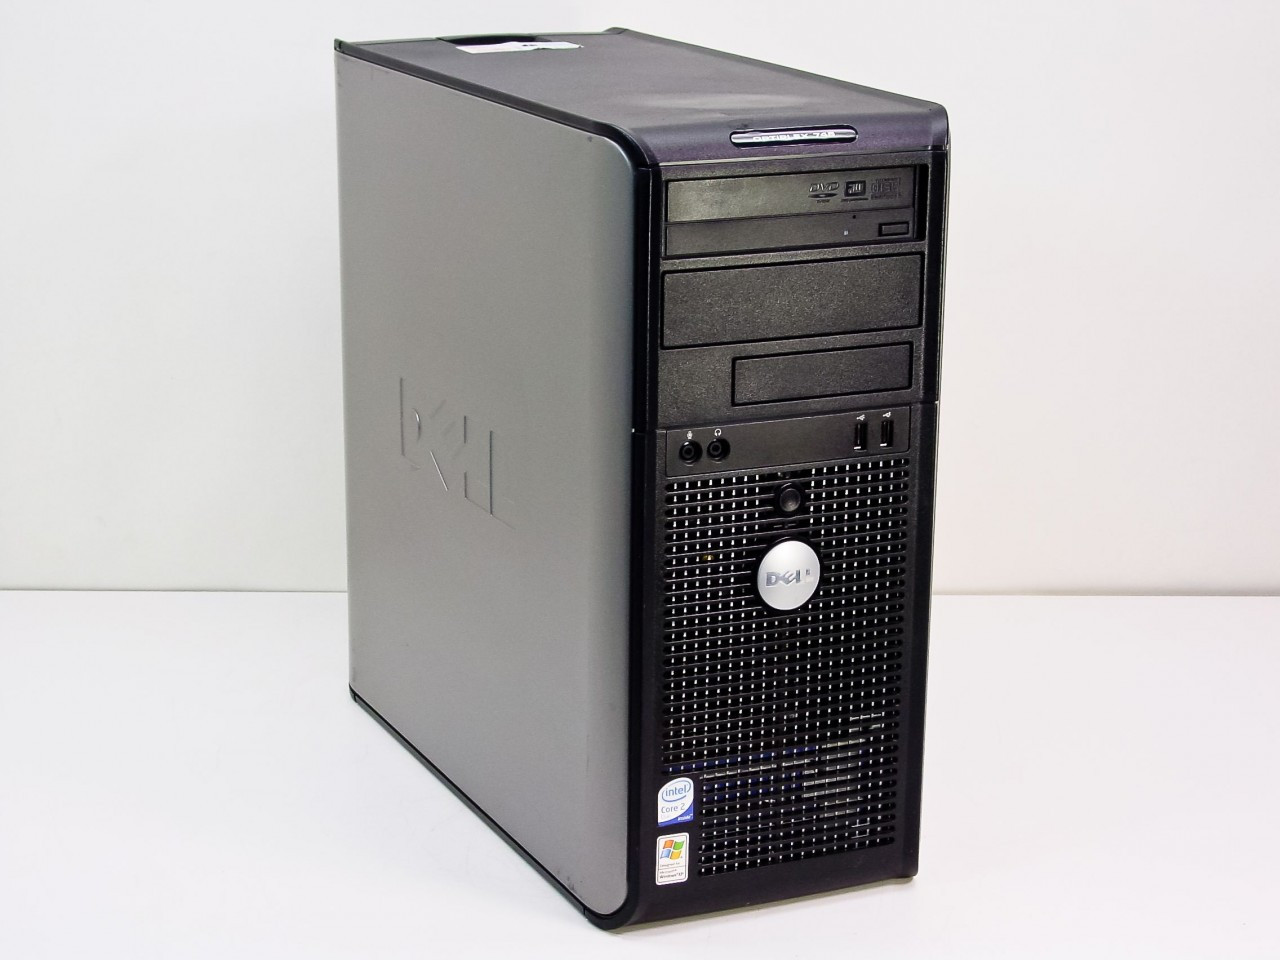 DELL DESKTOP OPTIPLEX 745 DRIVERS FOR WINDOWS MAC